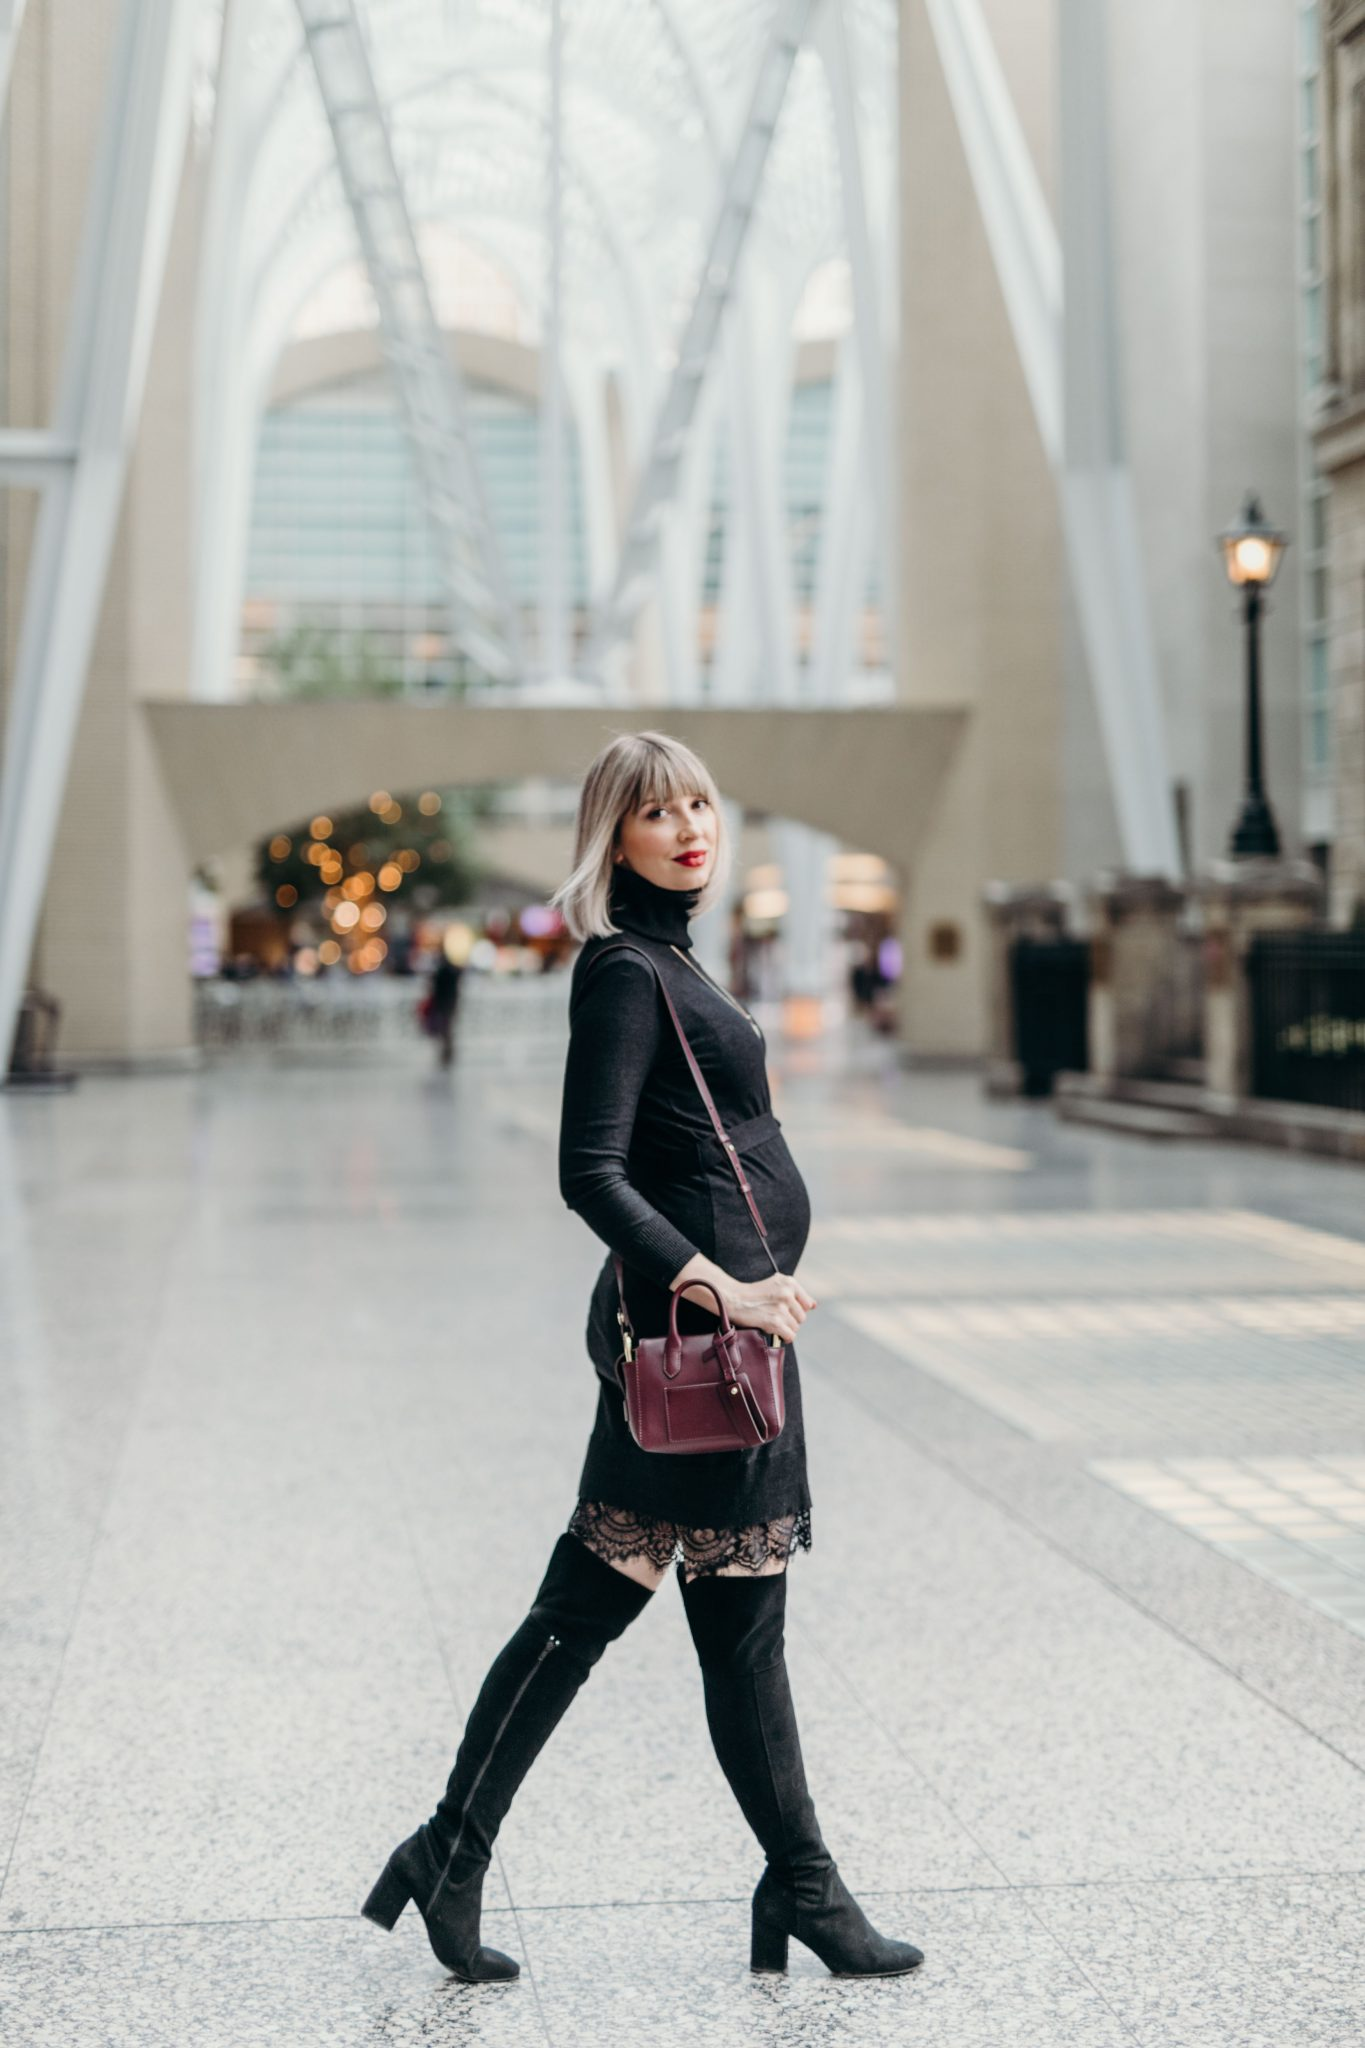 sweater Dress with Lace maternity style (3 of 10)